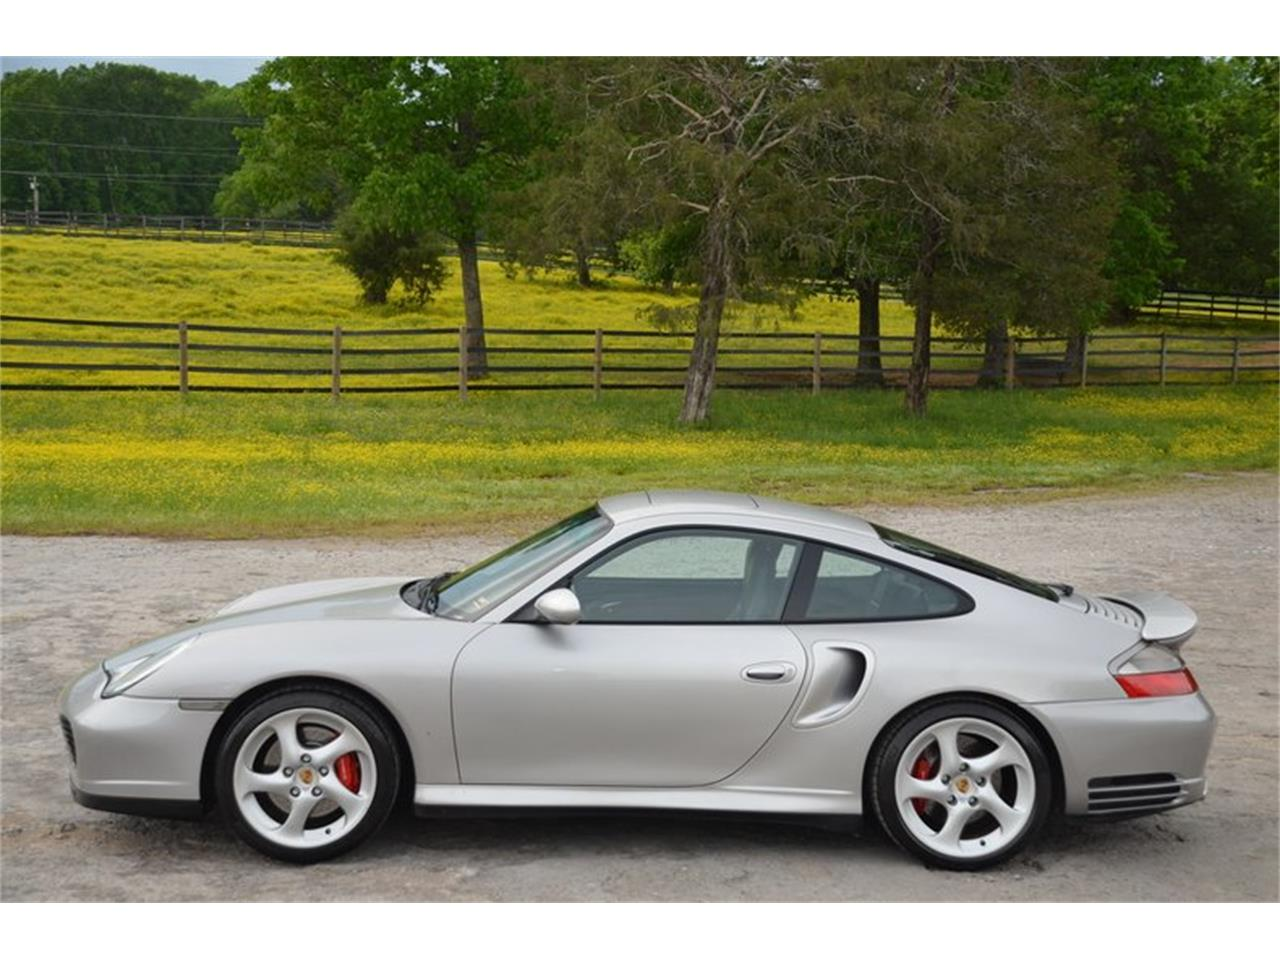 2002 Porsche 996 Turbo Cabriolet (CC-1213623) for sale in Lebanon, Tennessee